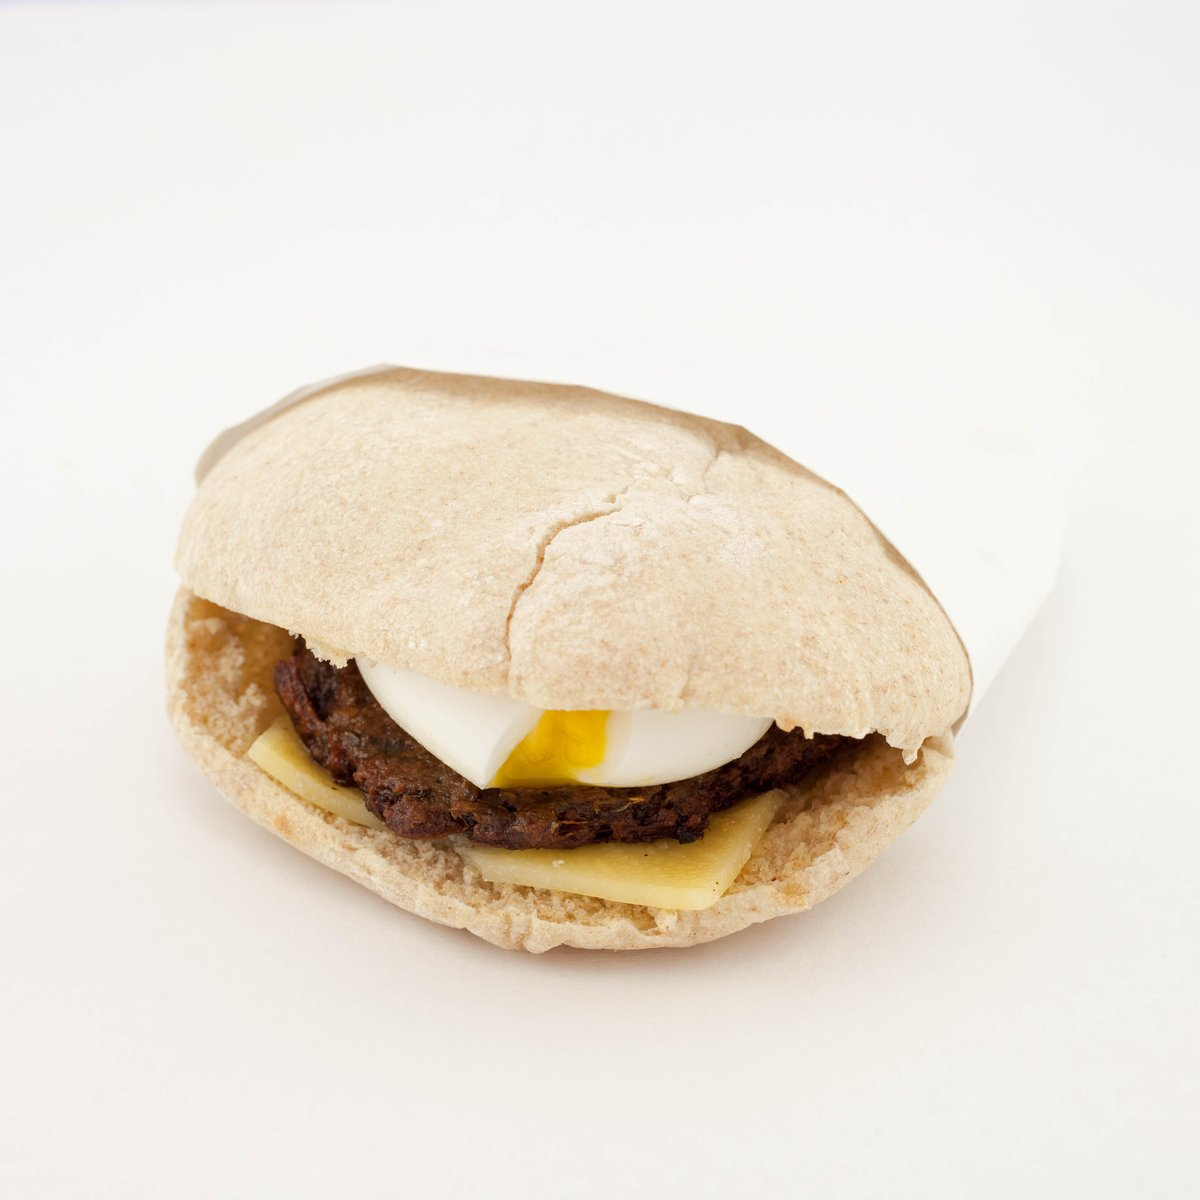 Clover is now selling a meatless sausage breakfast sandwich